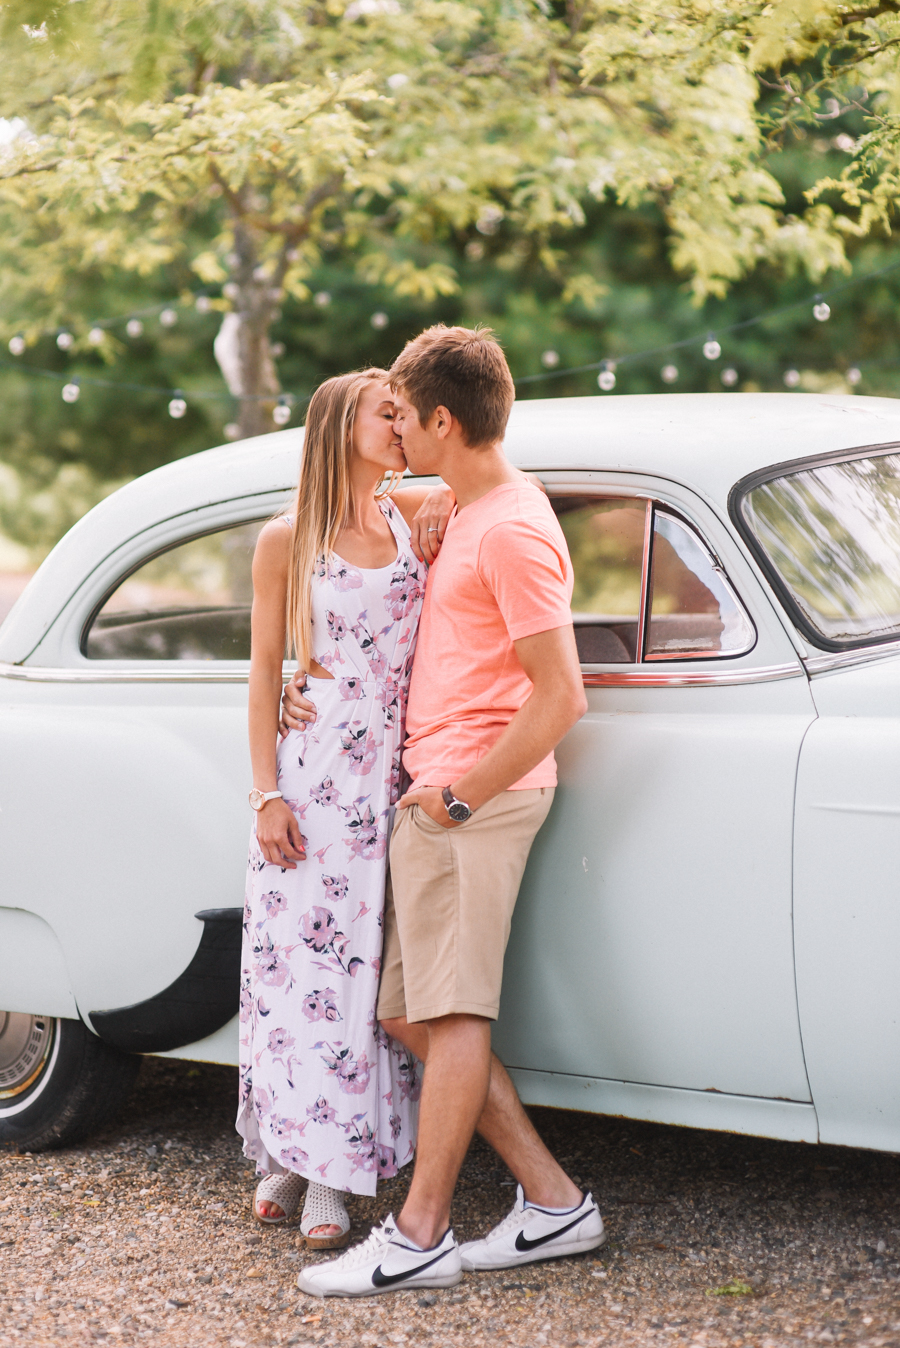 Southern_Exposure_Herb_Farm_Engagement_Photos-29.jpg